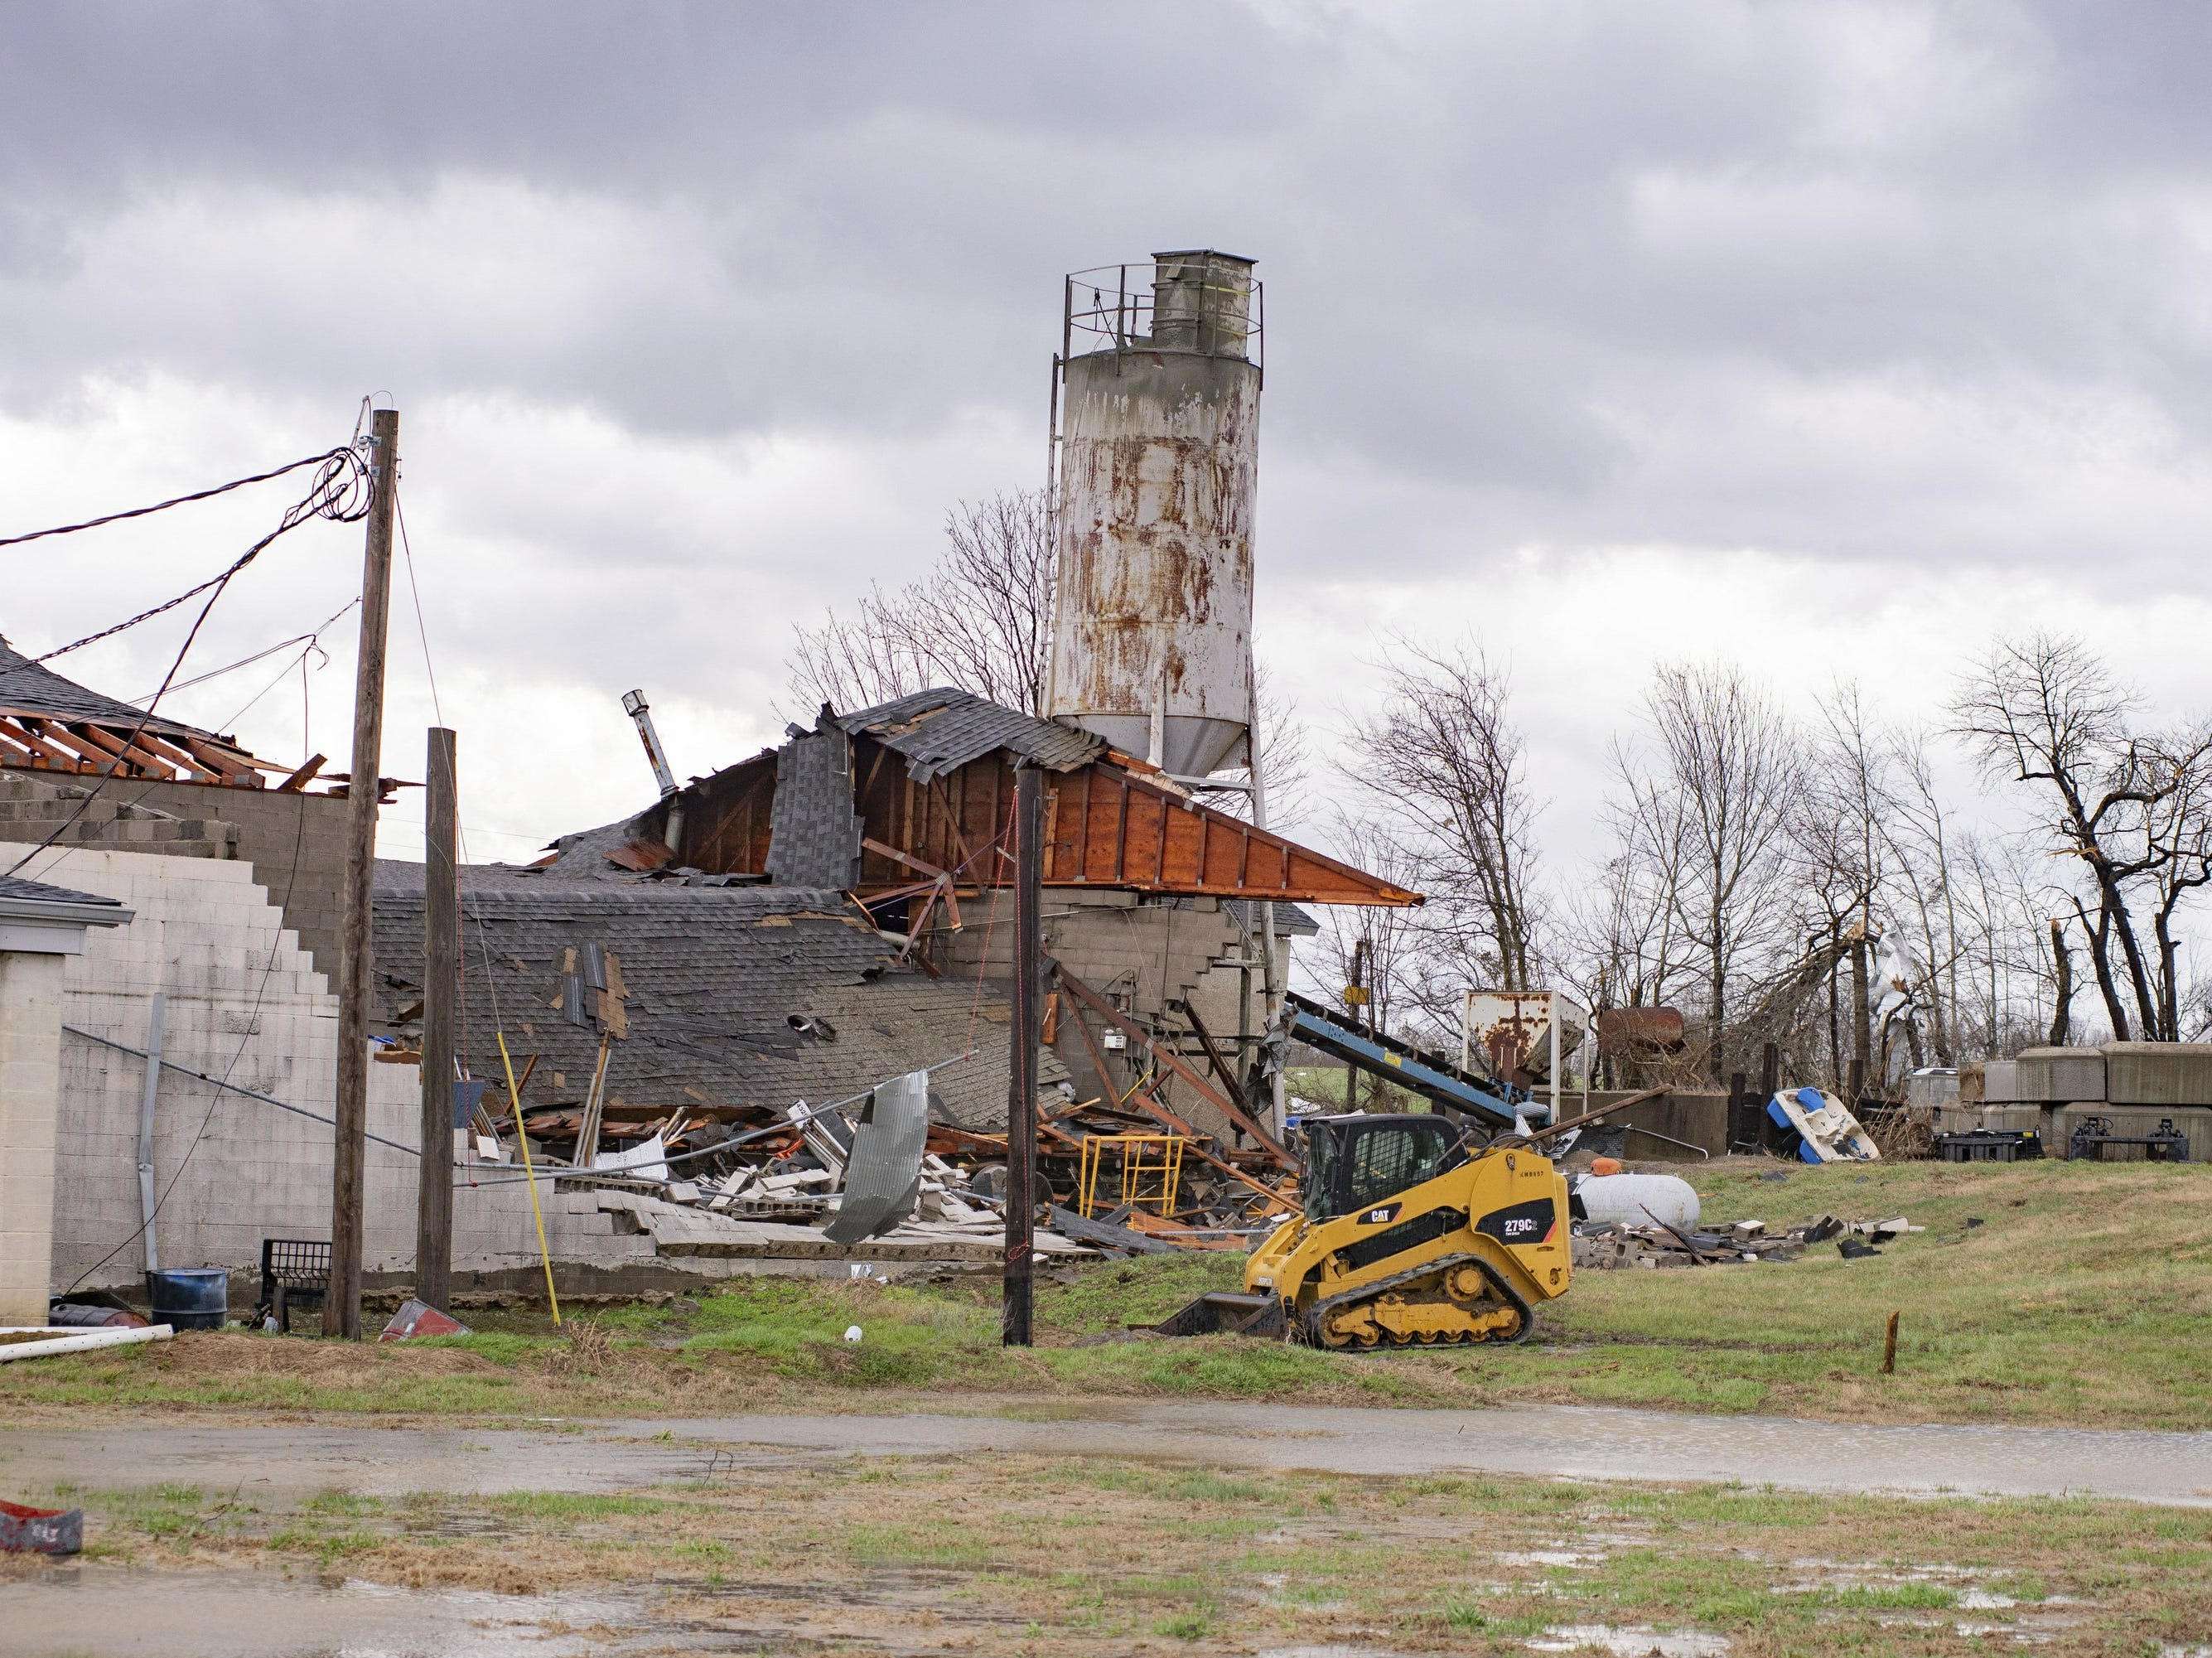 This Thursday, March 14, 2019 photo shows damage to the Wilbert Vault Co., in West Paducah, Ky. A tornado left a path in western Kentucky from Lovelaceville through the West Paducah area, according to Keith Todd, a spokesman for the Kentucky Transportation Cabinet. He said the public was being asked to avoid the area while utility crews, area fire departments, and rescue squads worked to clear utility lines, downed trees and other debris.